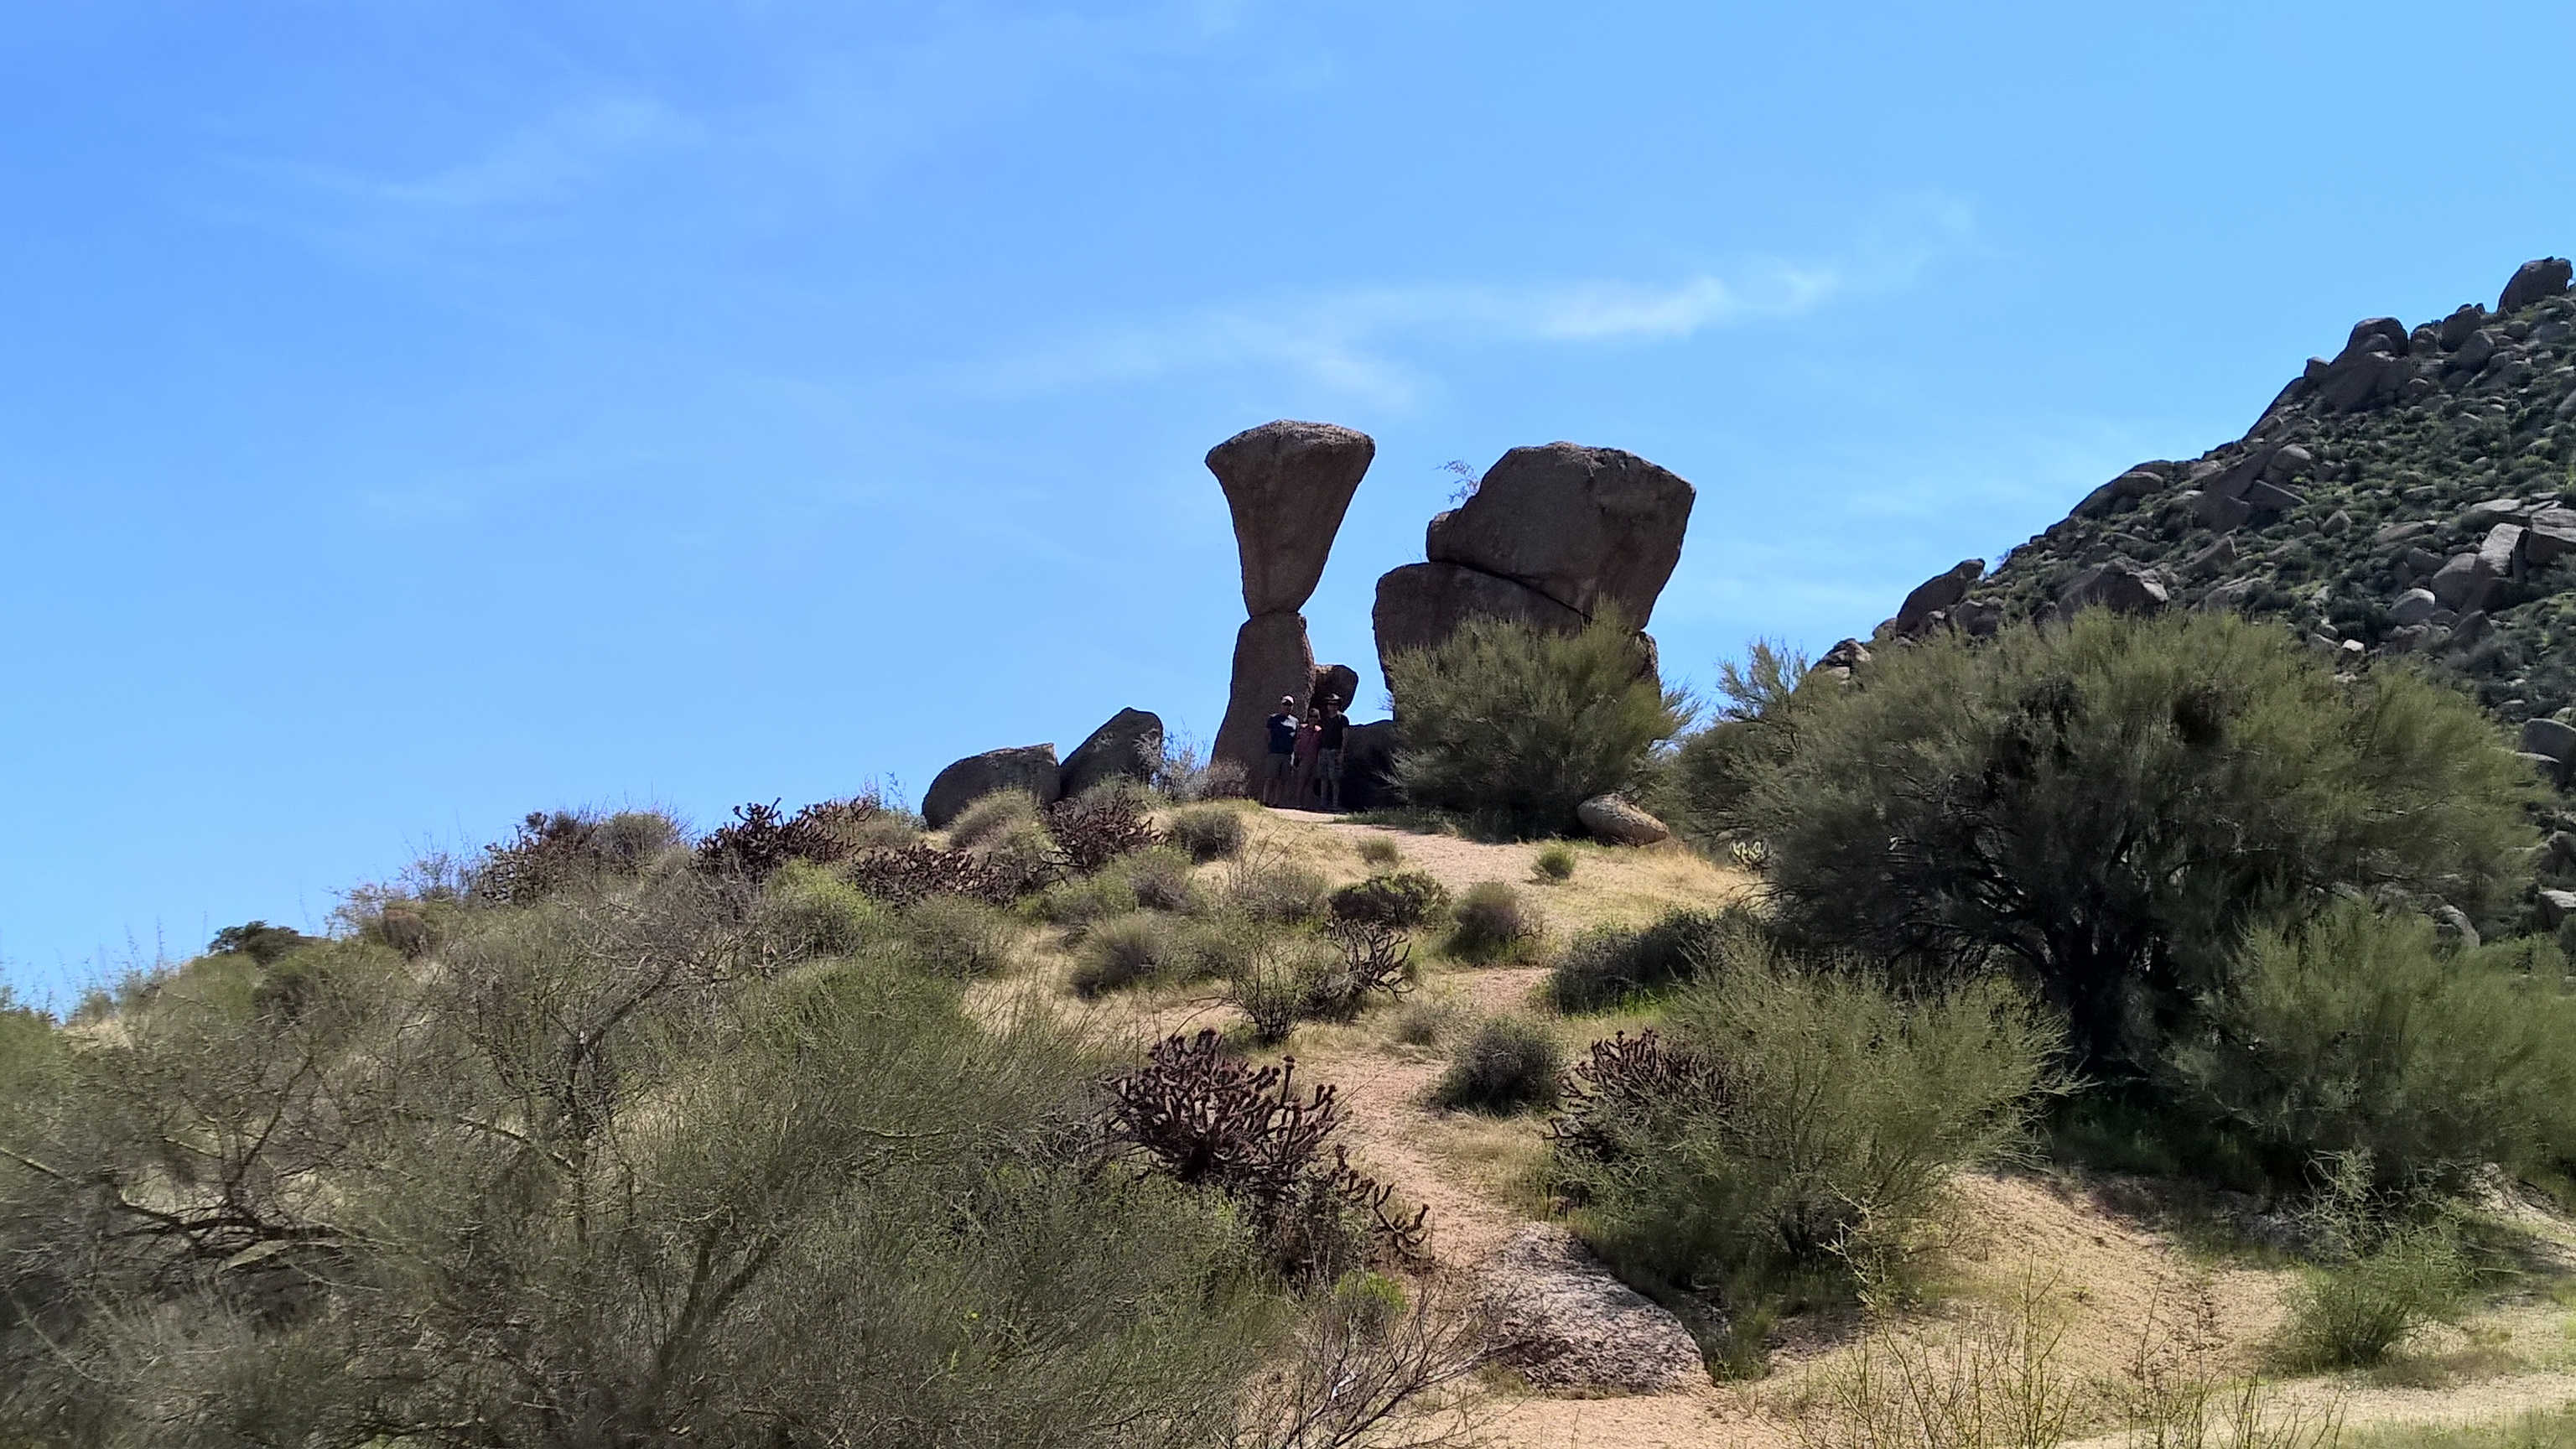 on a hike in scottsdale